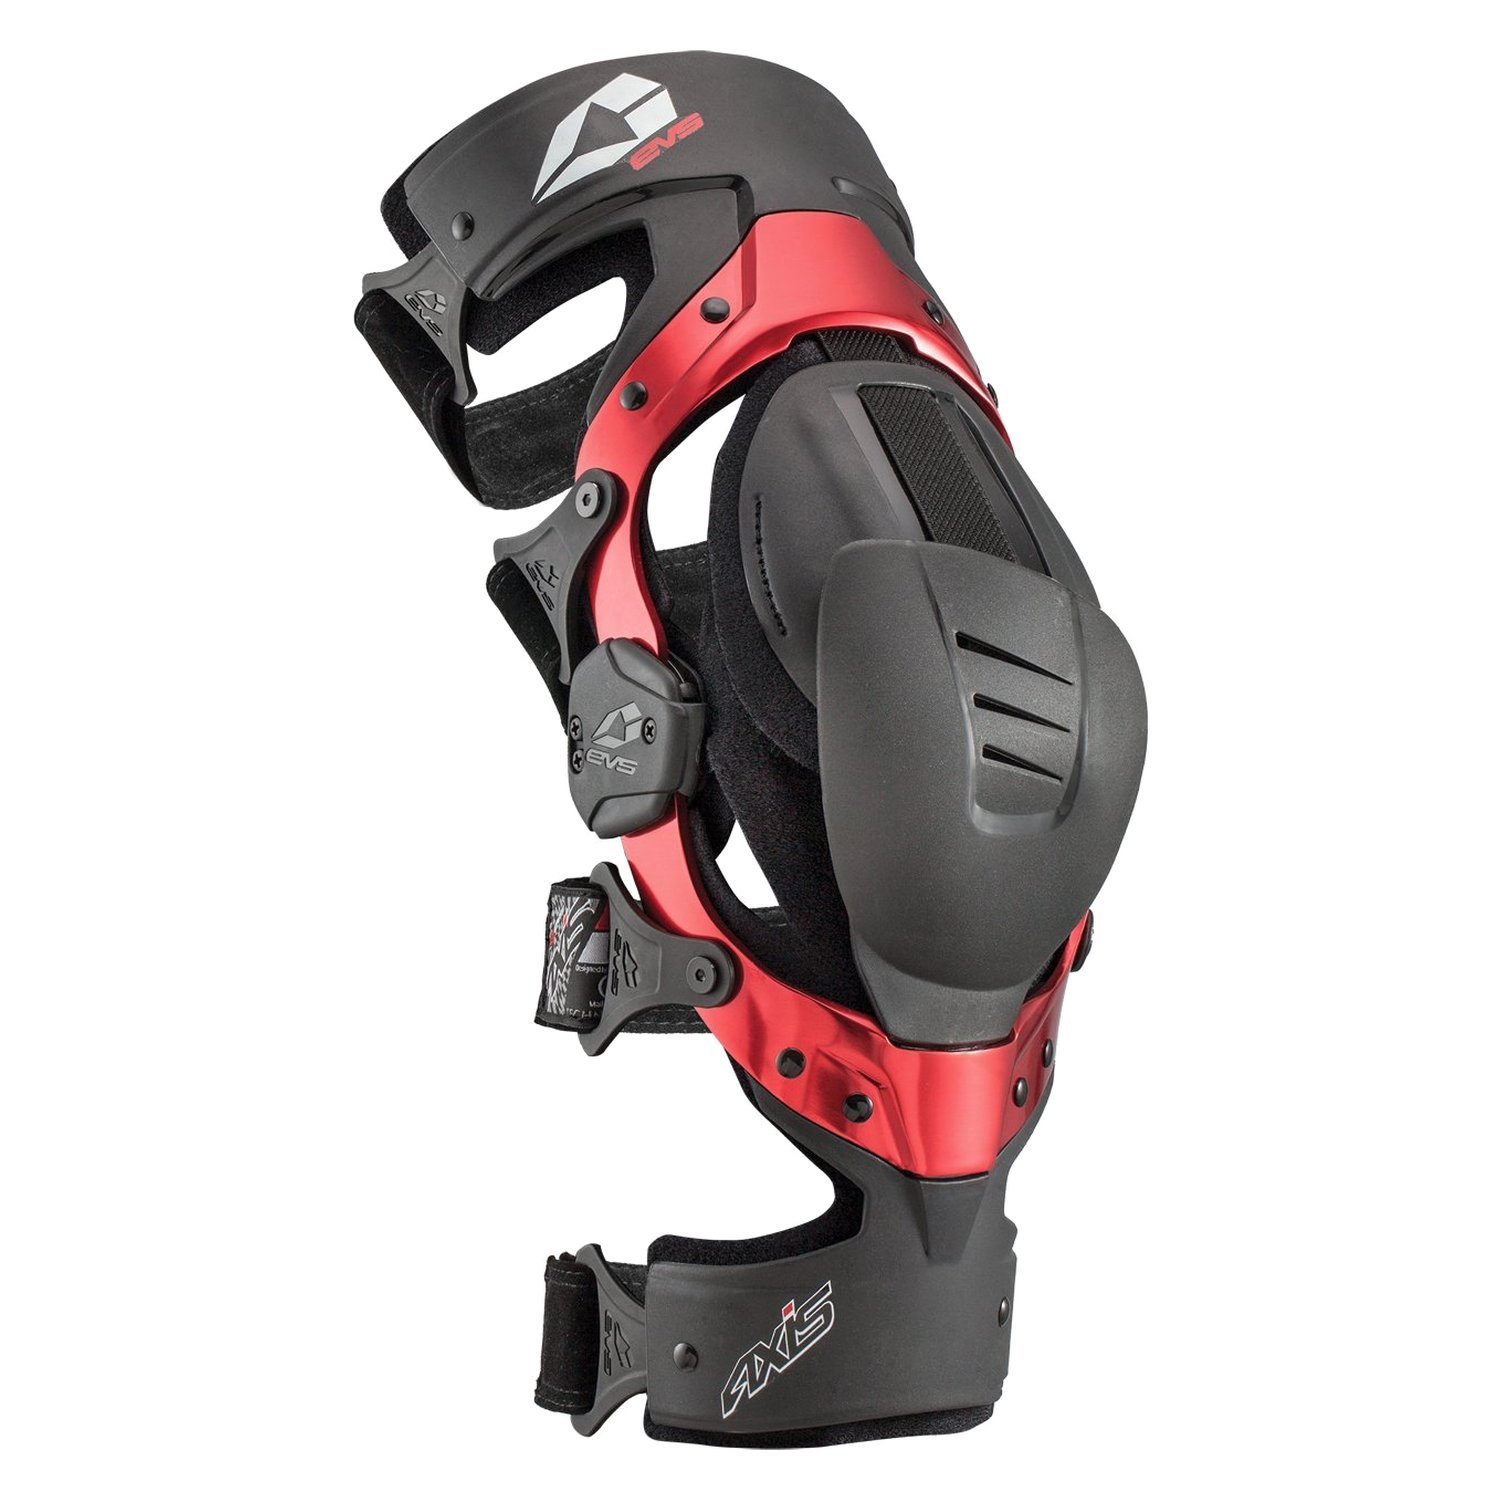 d2837e7ca4 EVS Sports® 212050-0137 - Axis Sport Right X-Large Black/Red Knee ...